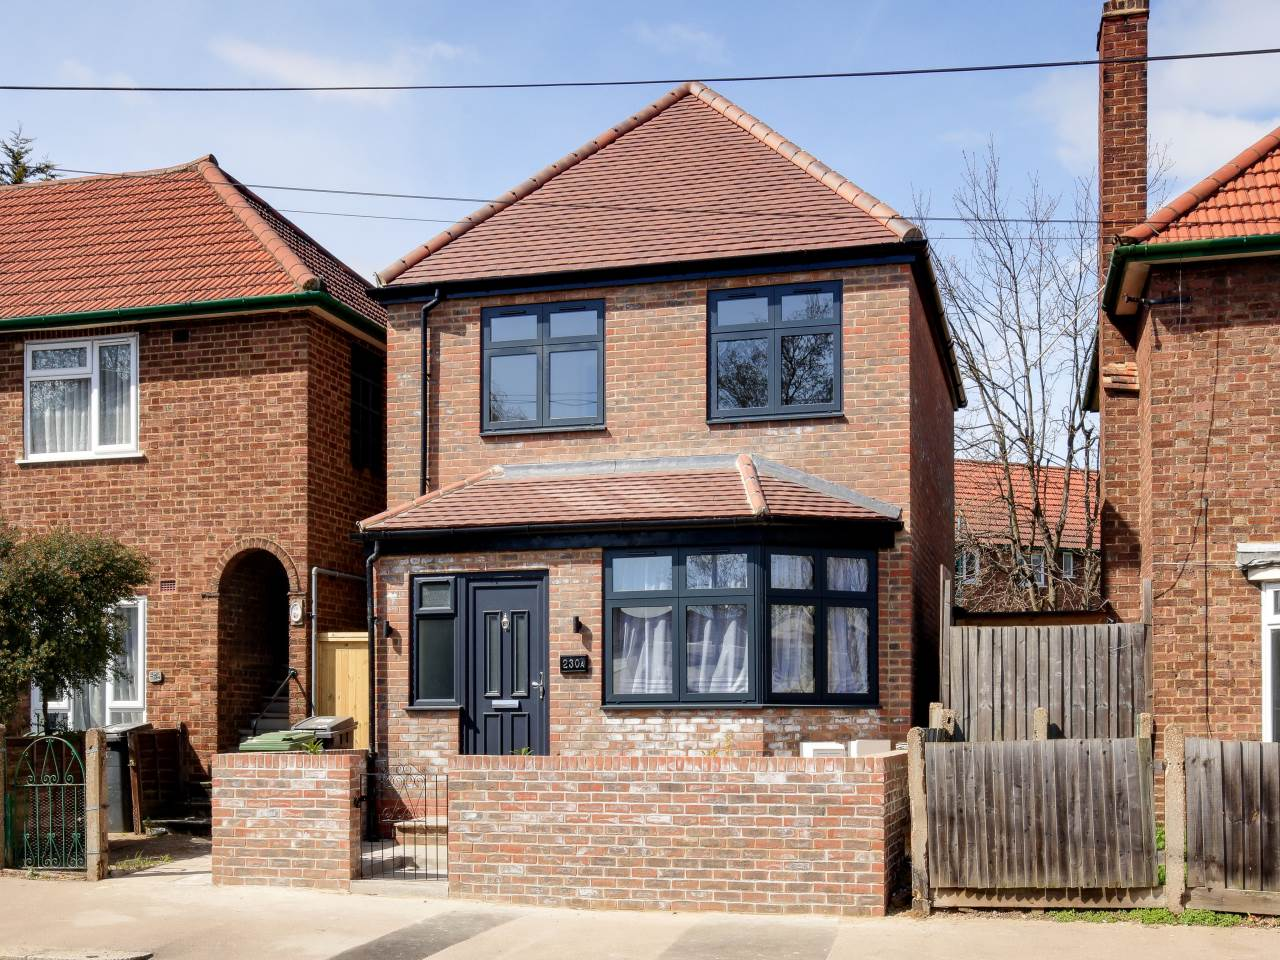 3 bed house for sale in Shernhall Street , Walthamstow , E17